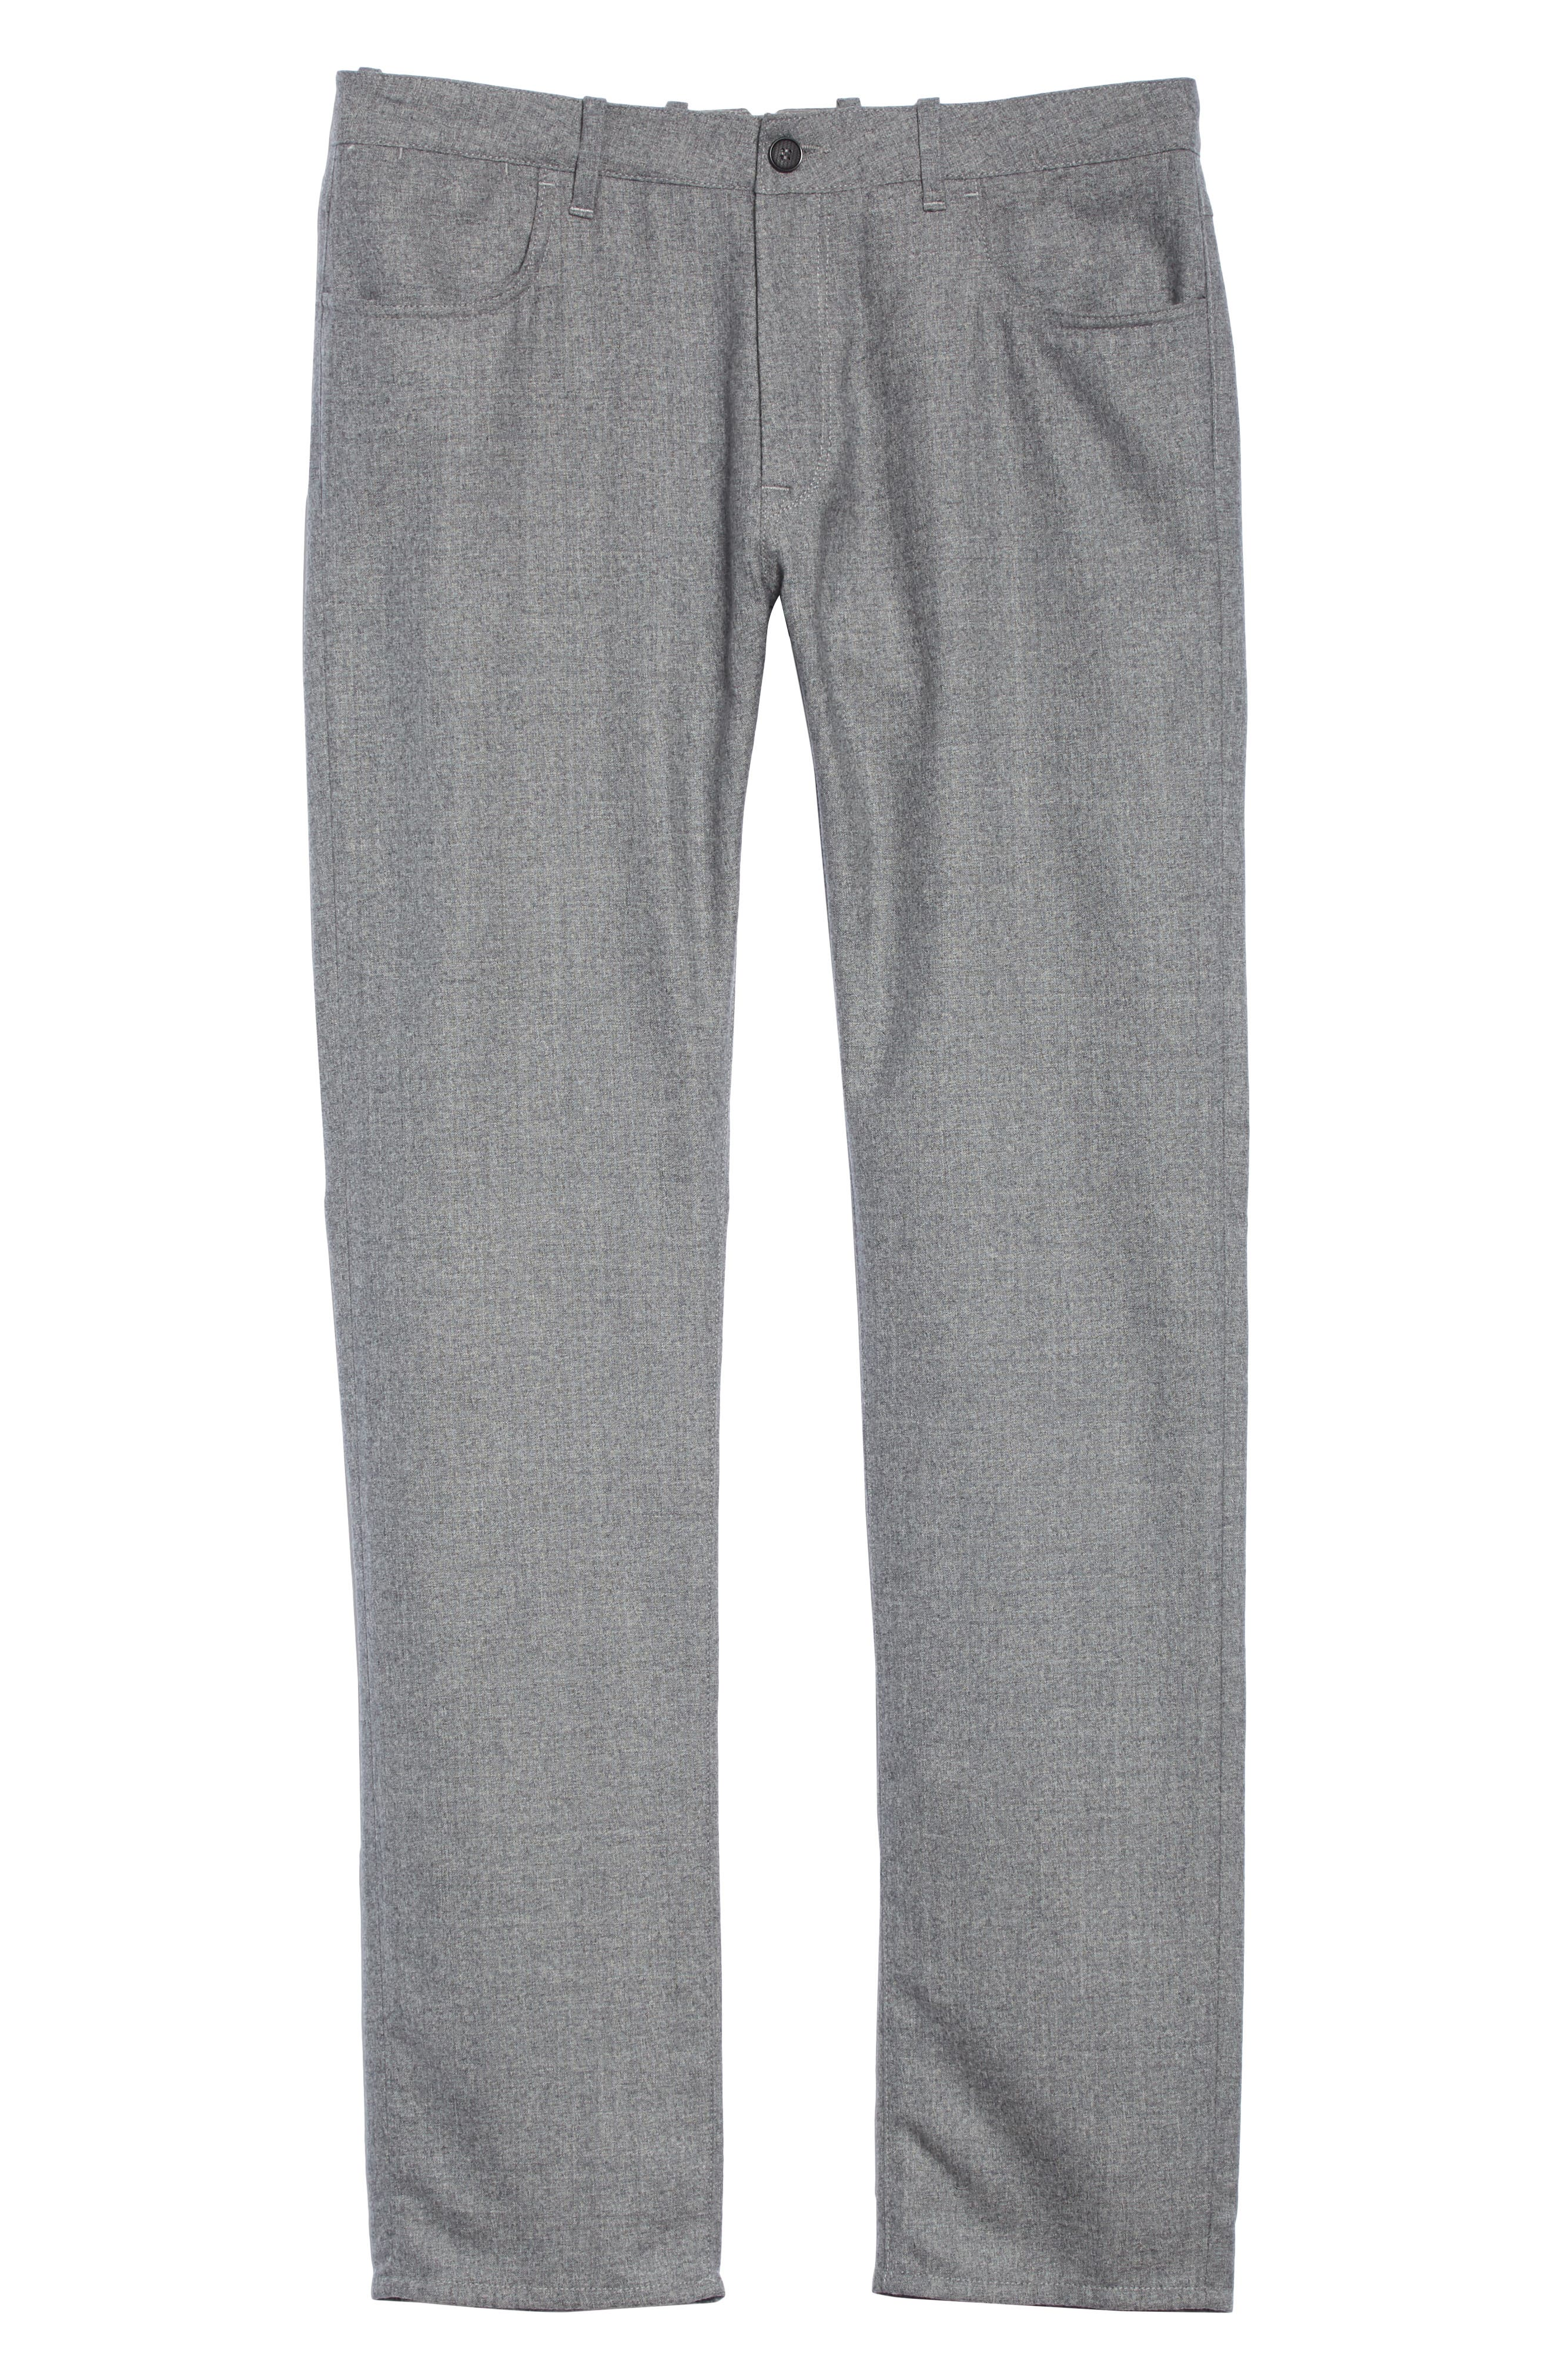 Flat Front Flannel Wool Five-Pocket Trousers,                             Alternate thumbnail 6, color,                             LIGHT GREY